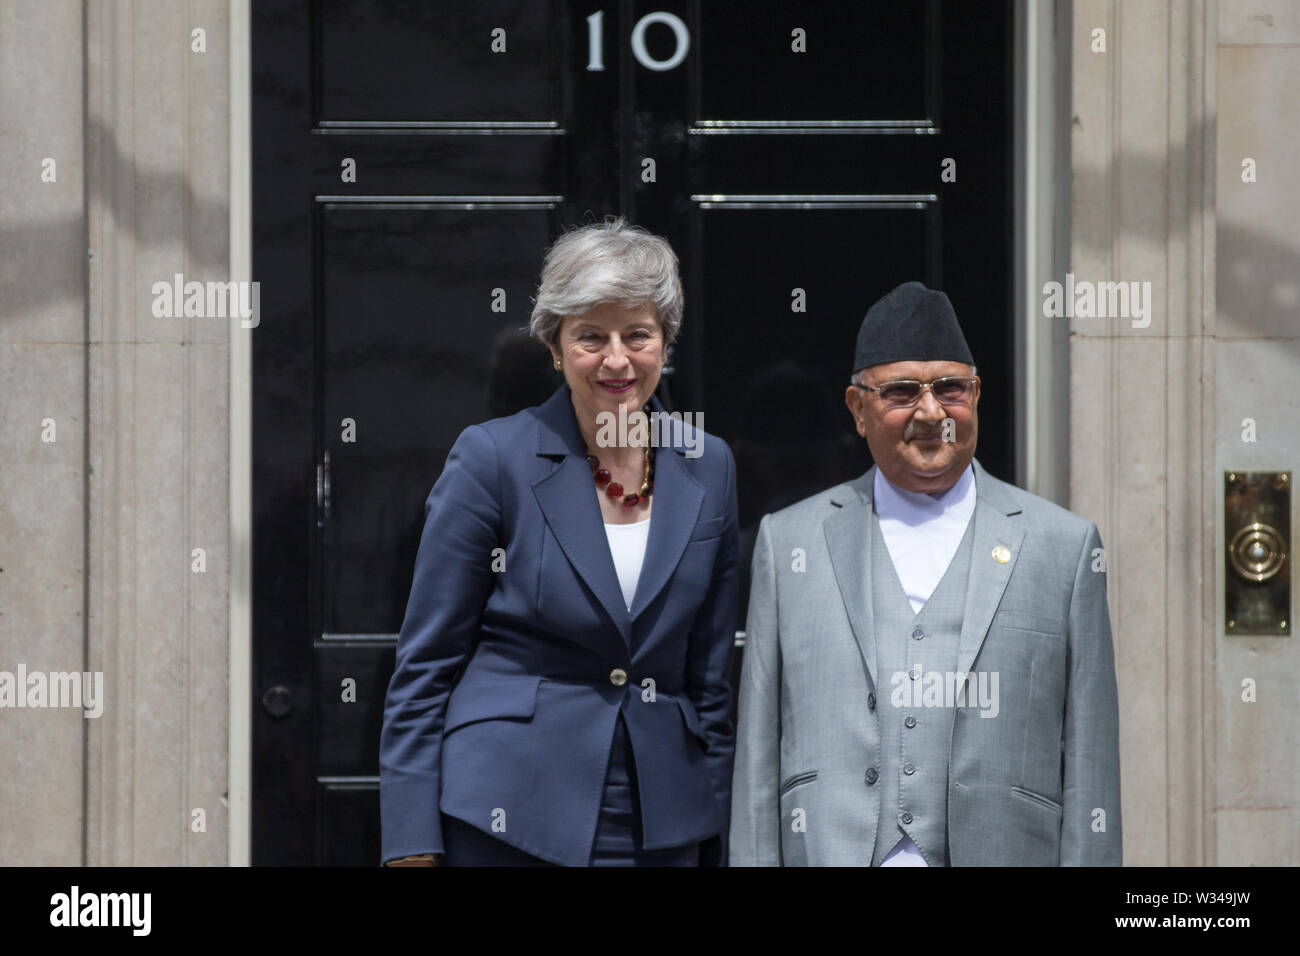 Prime Minister Theresa May greets Nepalese Prime Minister Khadga